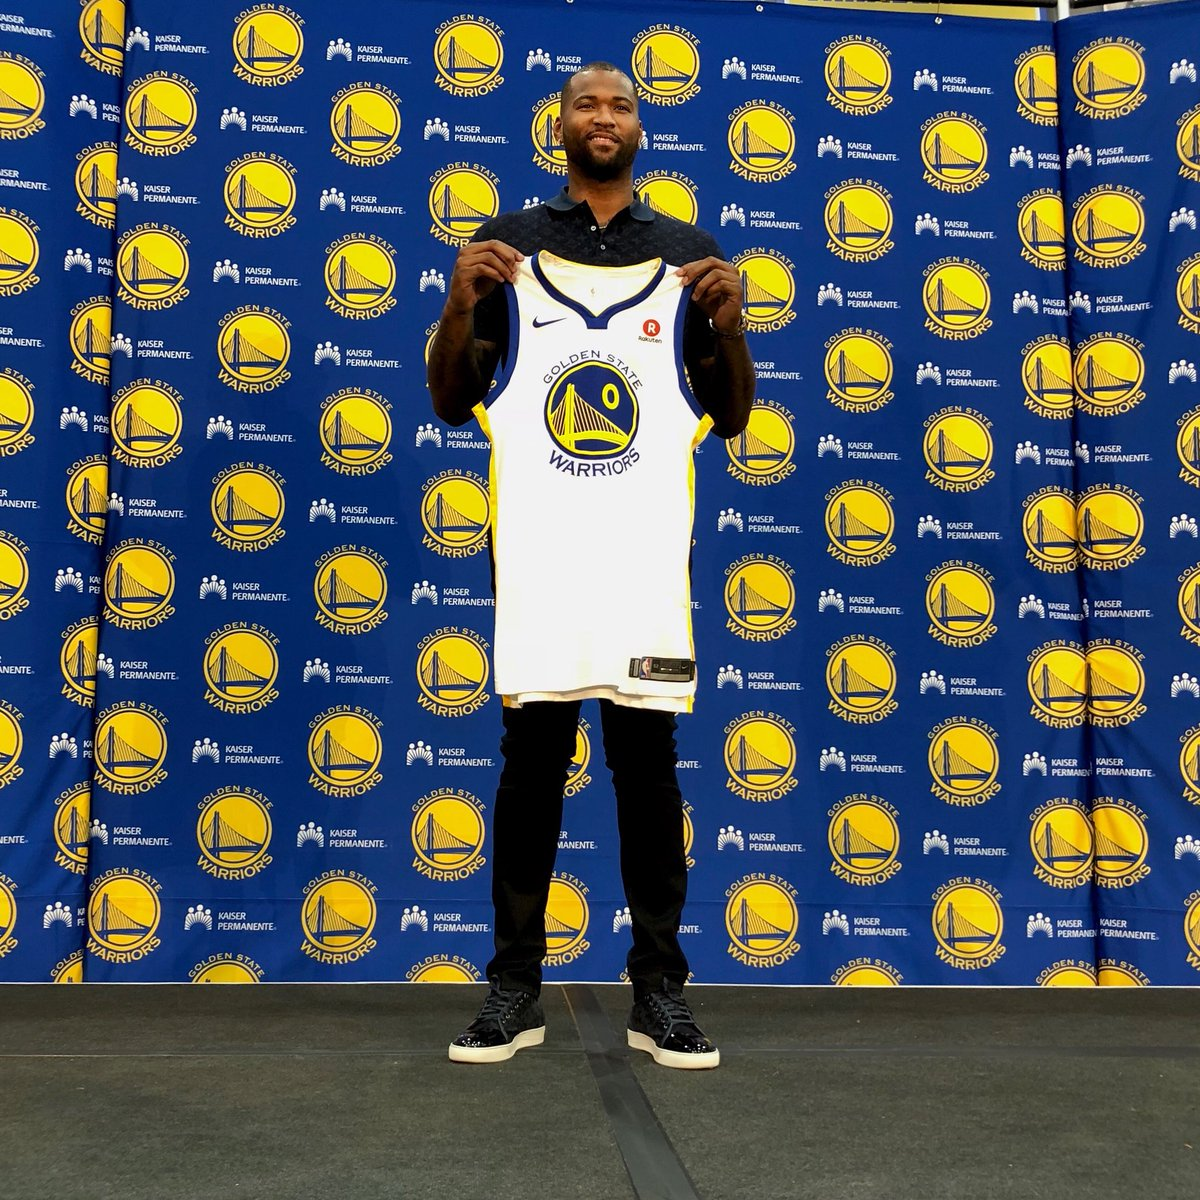 New threads for Boogie. (via @warriors)